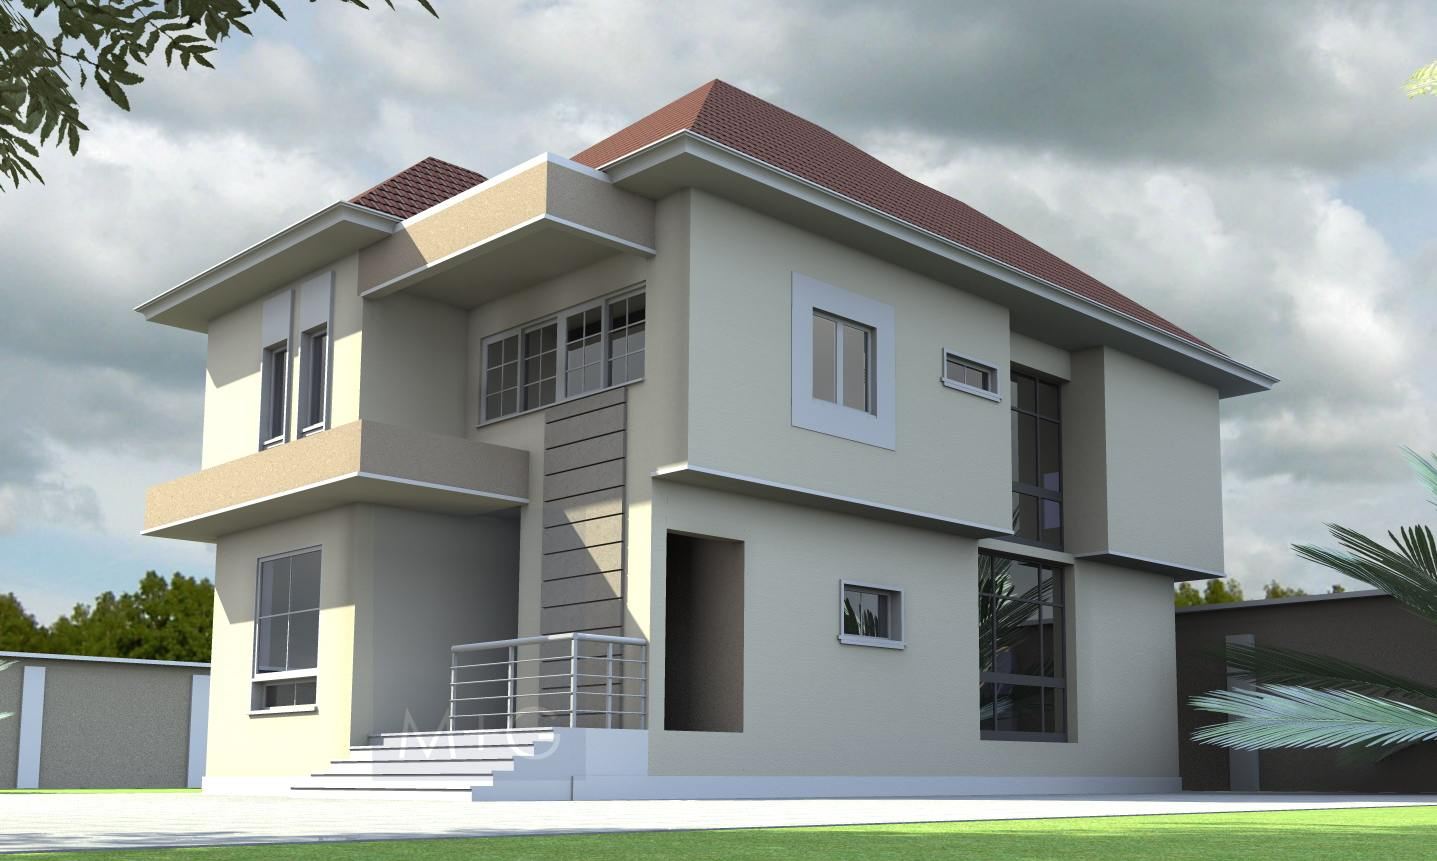 House plans and design architectural designs for for Residential architect